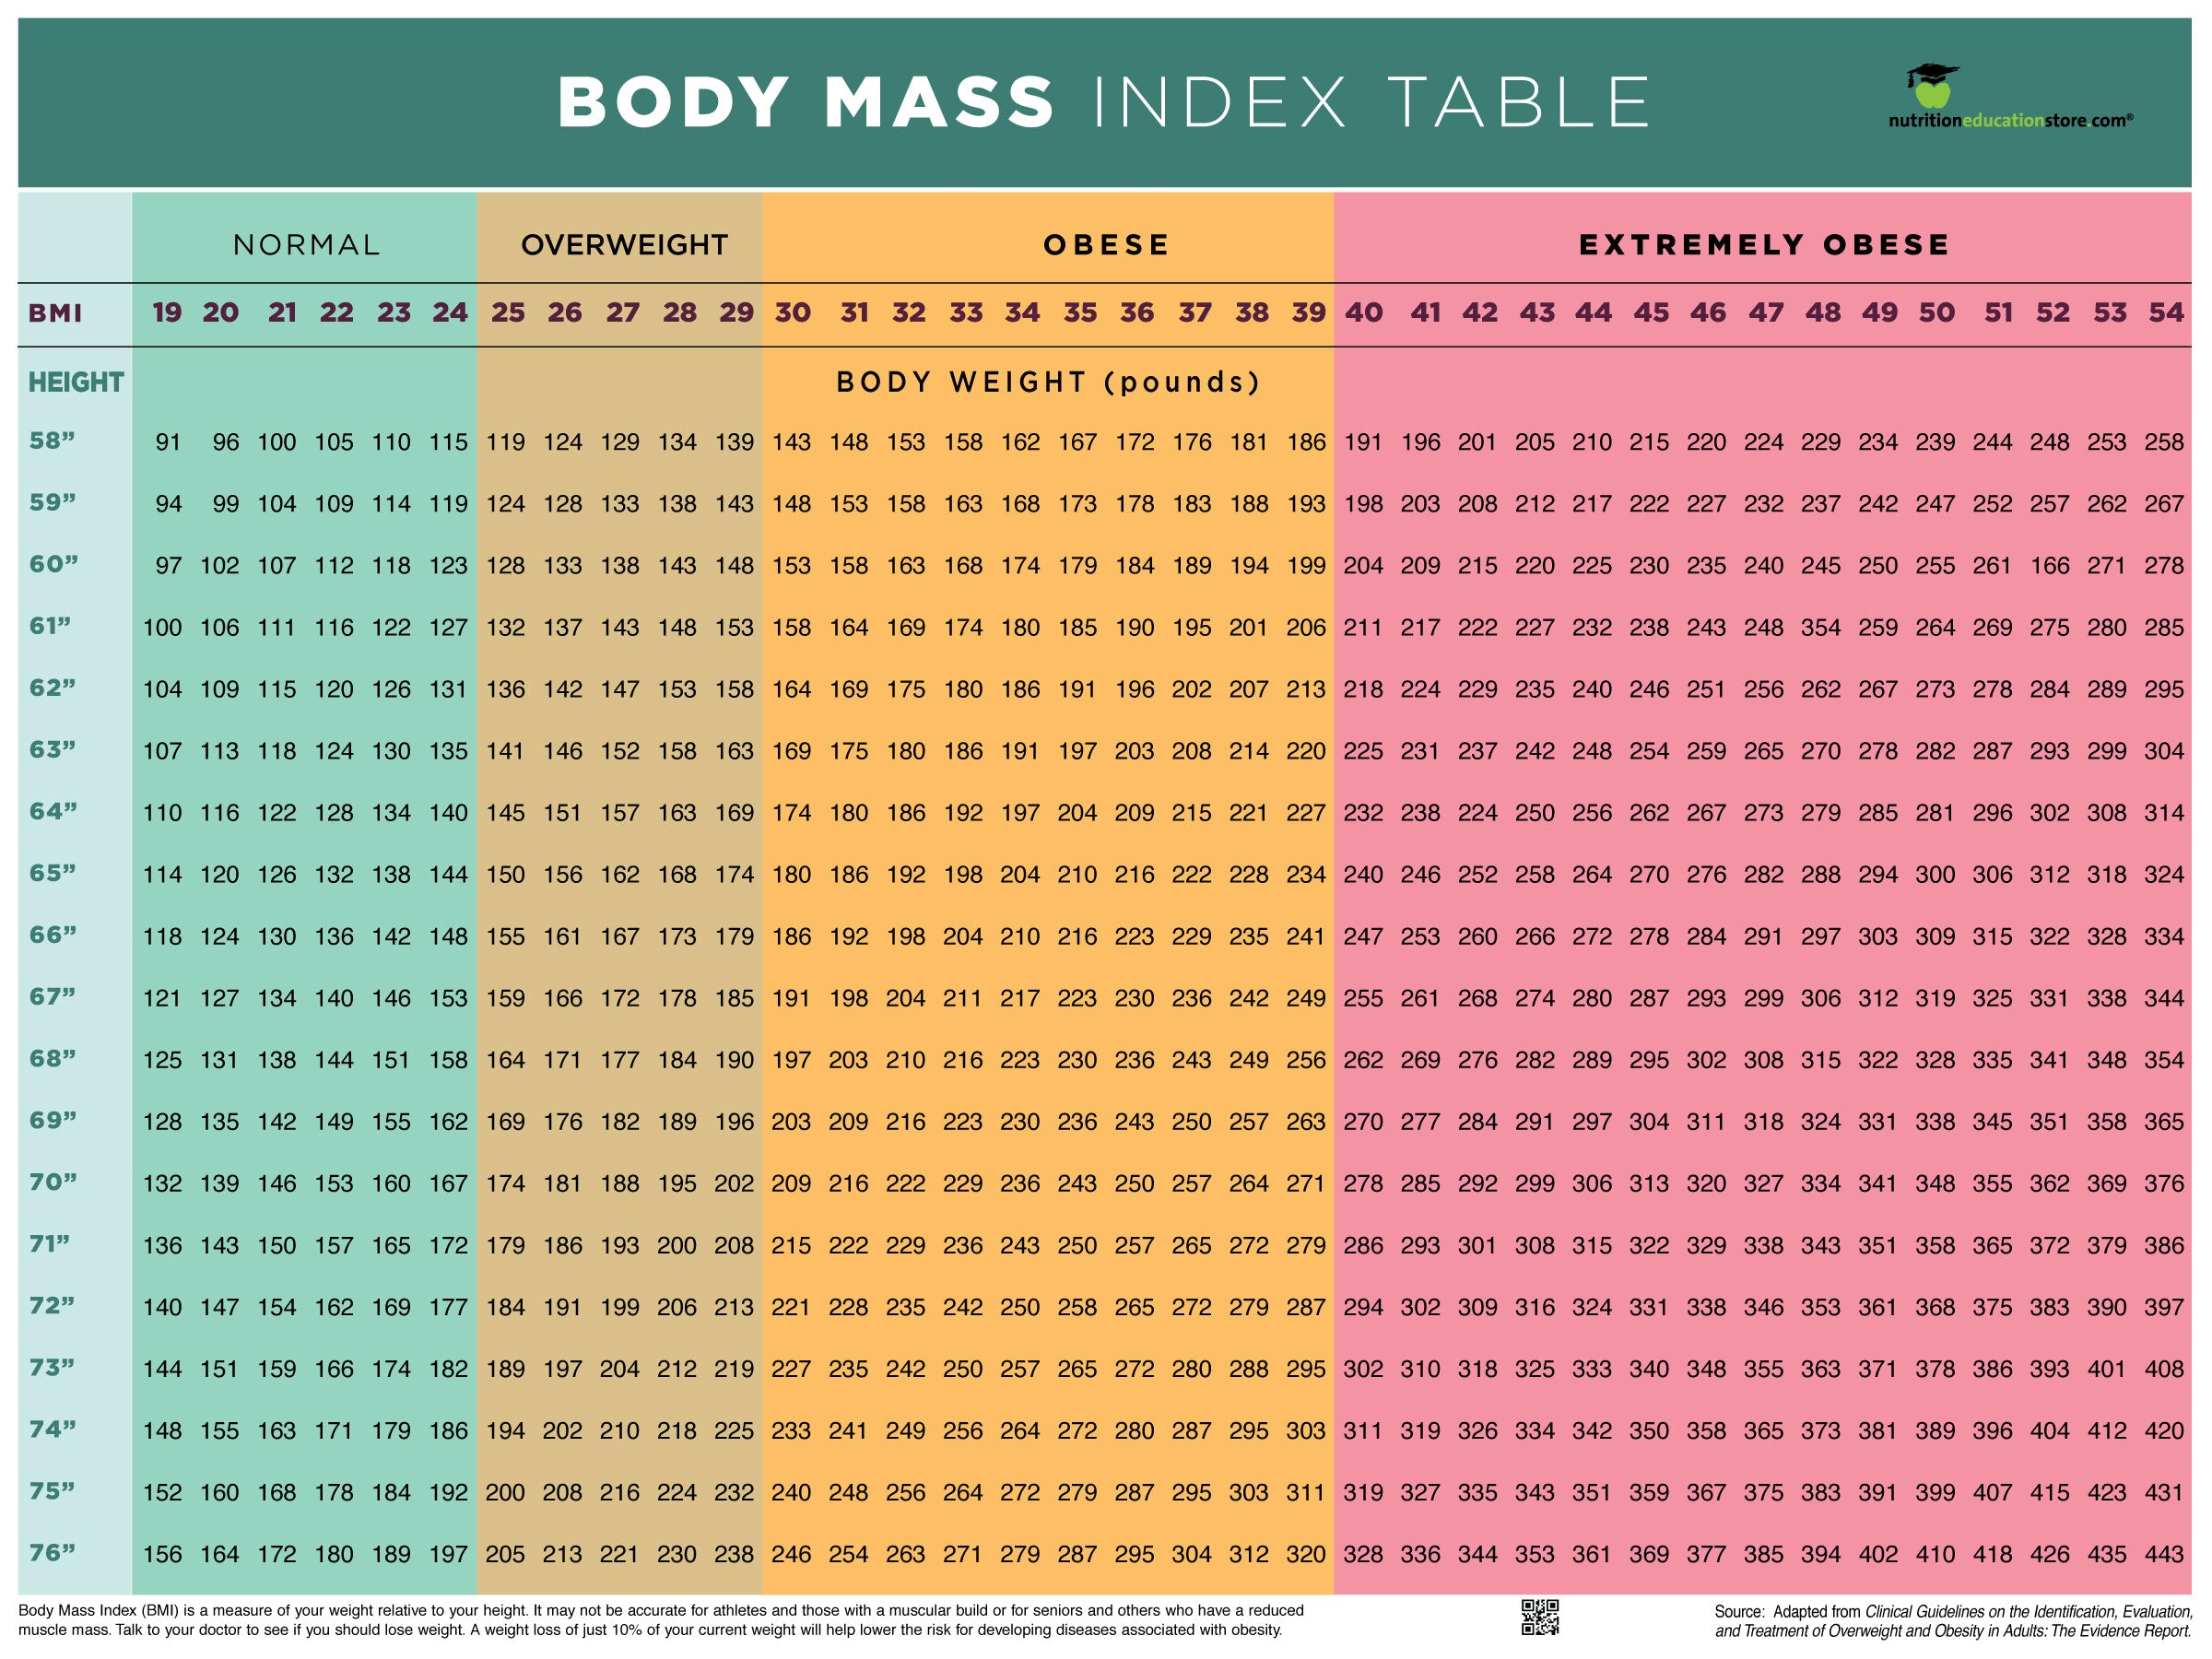 "BMI Poster - BMI Chart Poster - Body Mass Index Poster - 12"" x 18"" Exam Room Poster - Laminated - Nutrition Education Store"